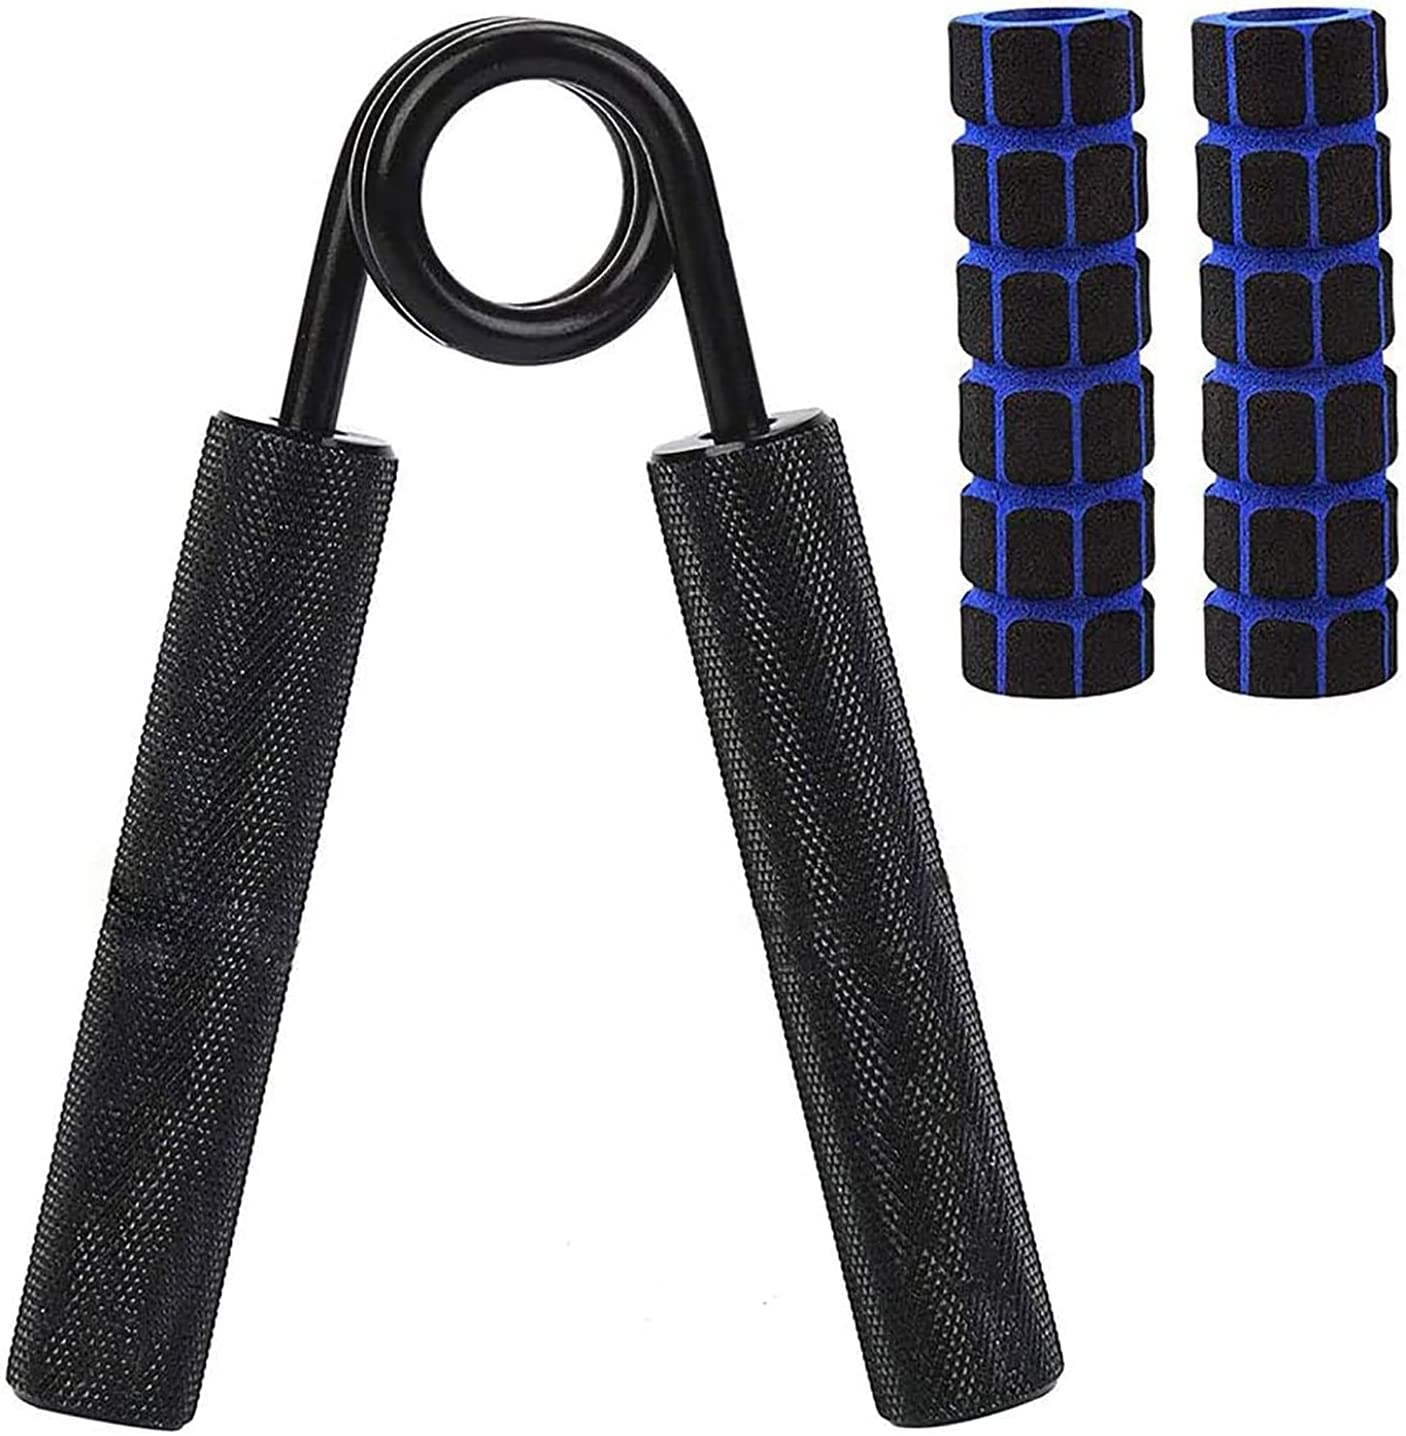 SimpleL 67% OFF of fixed price Hand Grips Deluxe for Strength Training Exerc Forearm Finger